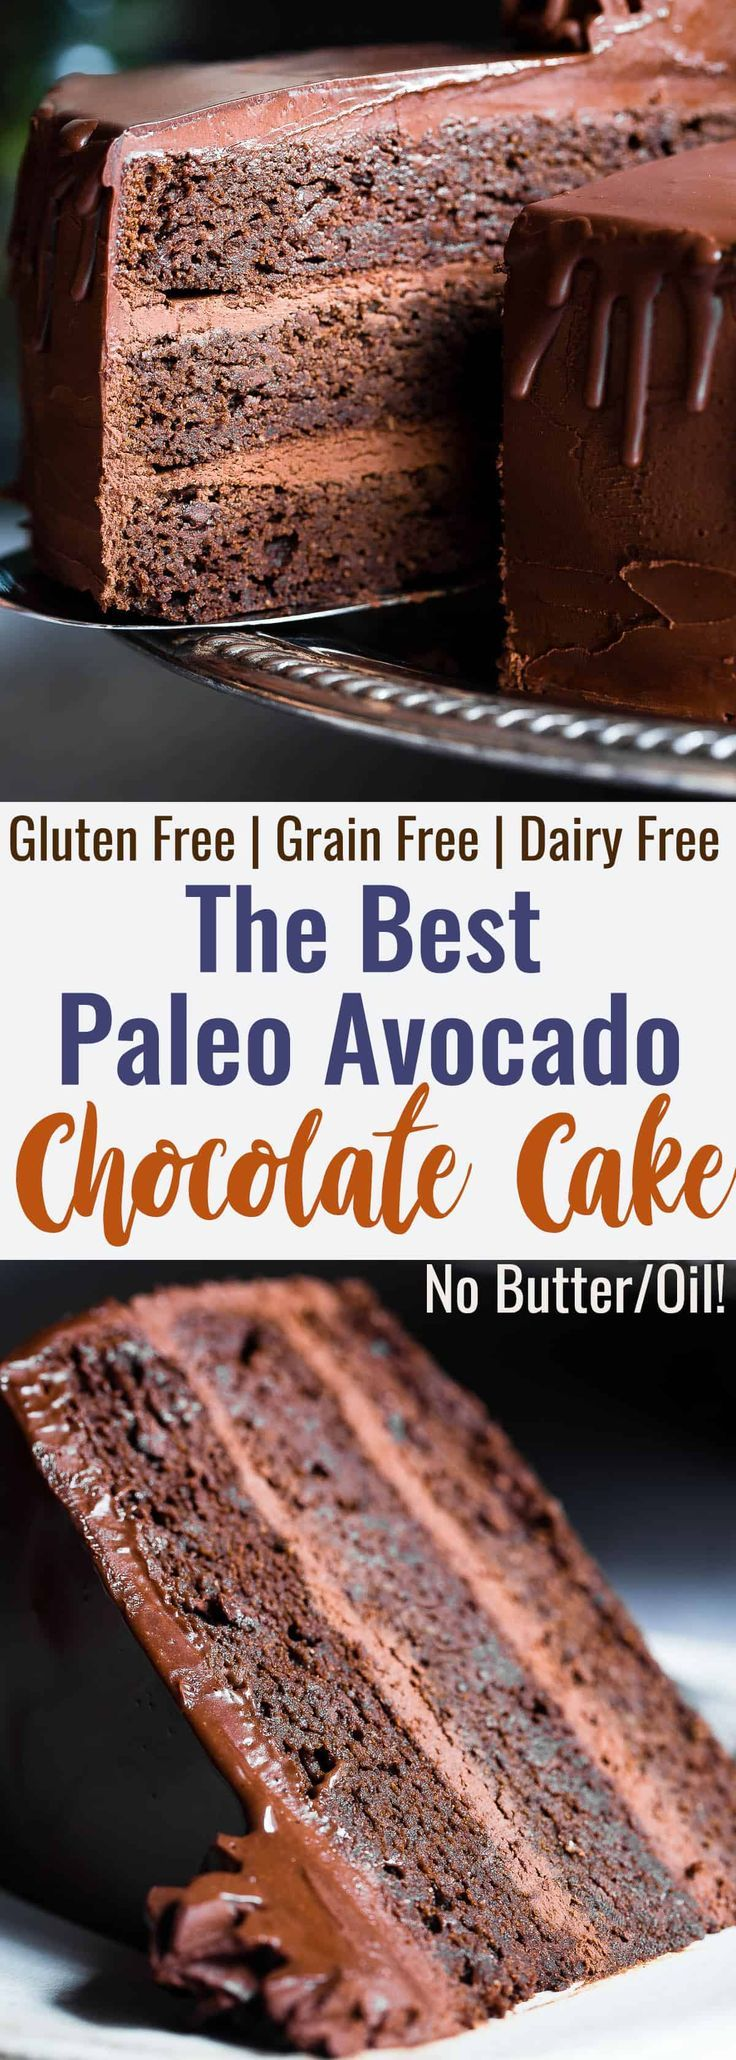 The Best Paleo Chocolate Avocado Cake This Dairy And Gluten Free